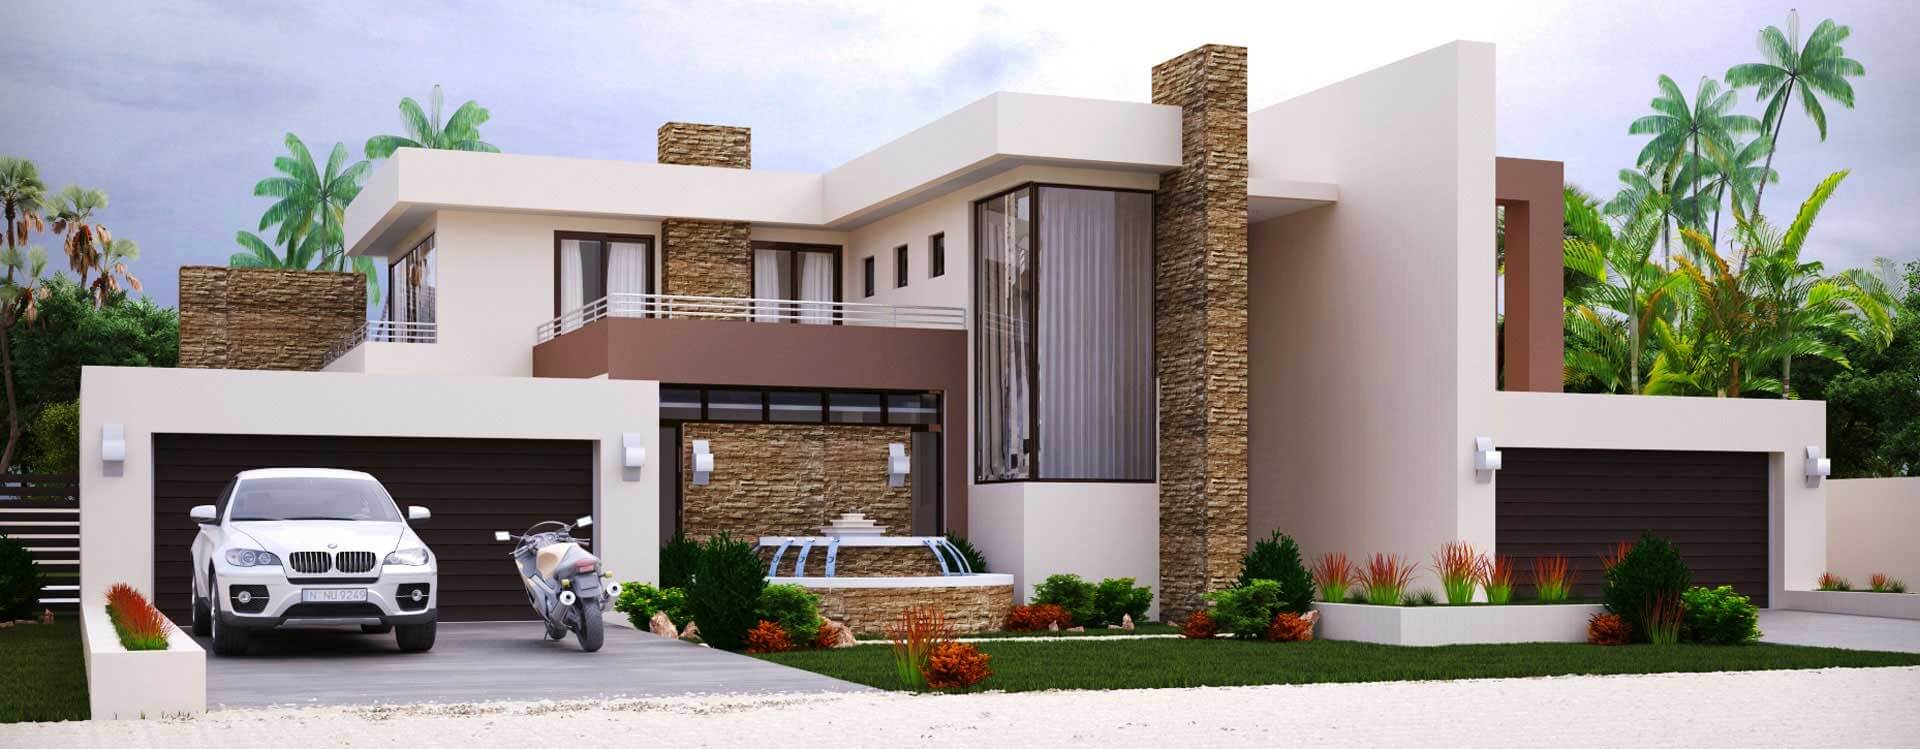 Nethouseplans   Affordable House PlansModern style house plan  bedroom  double storey floor plans  home design